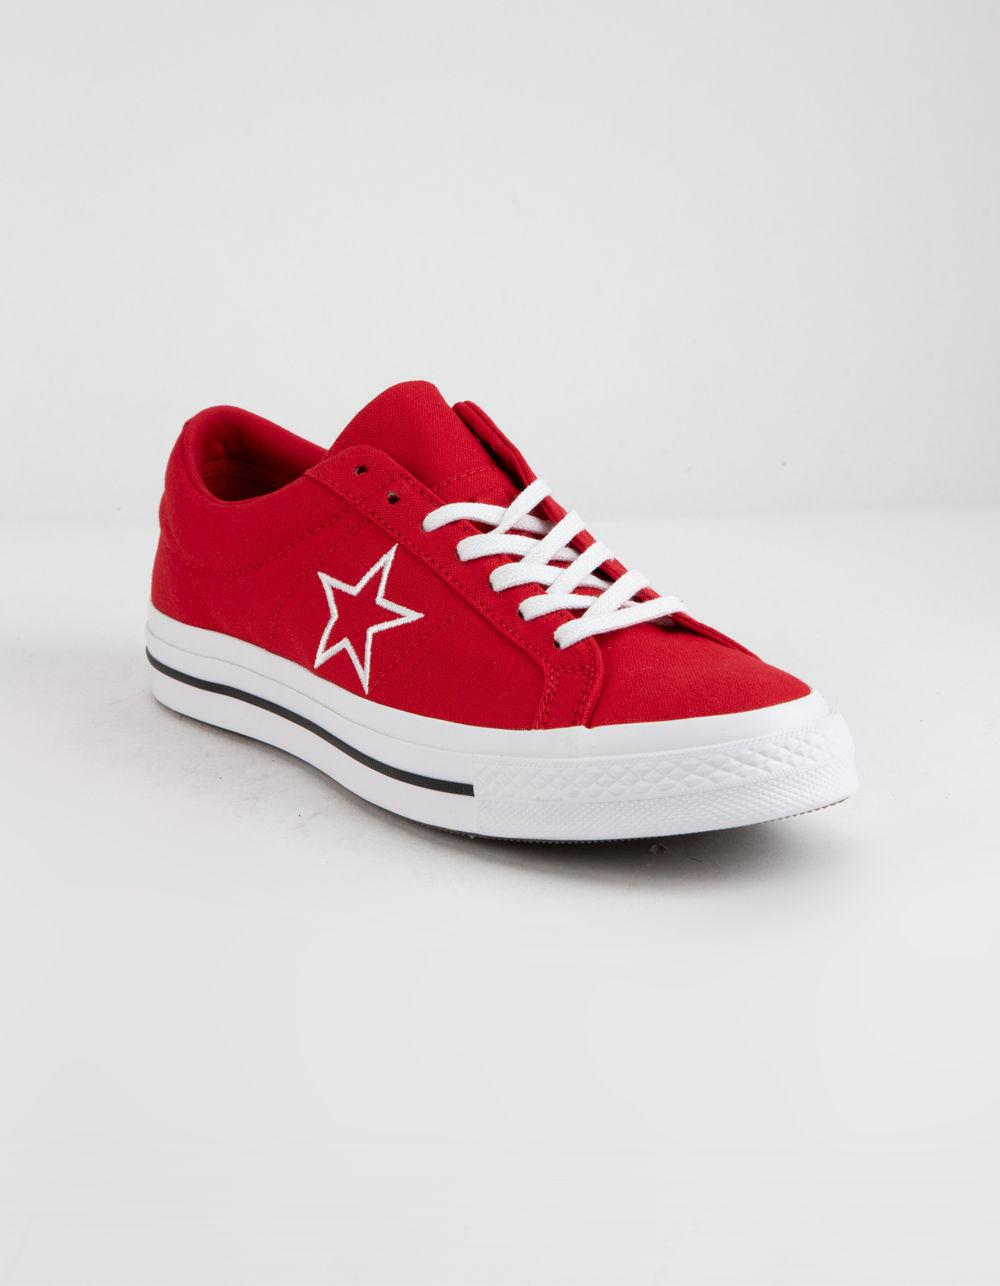 58272217ad3 Lyst - Converse One Star Ox Enamel Red   White Low Top Shoes in Red